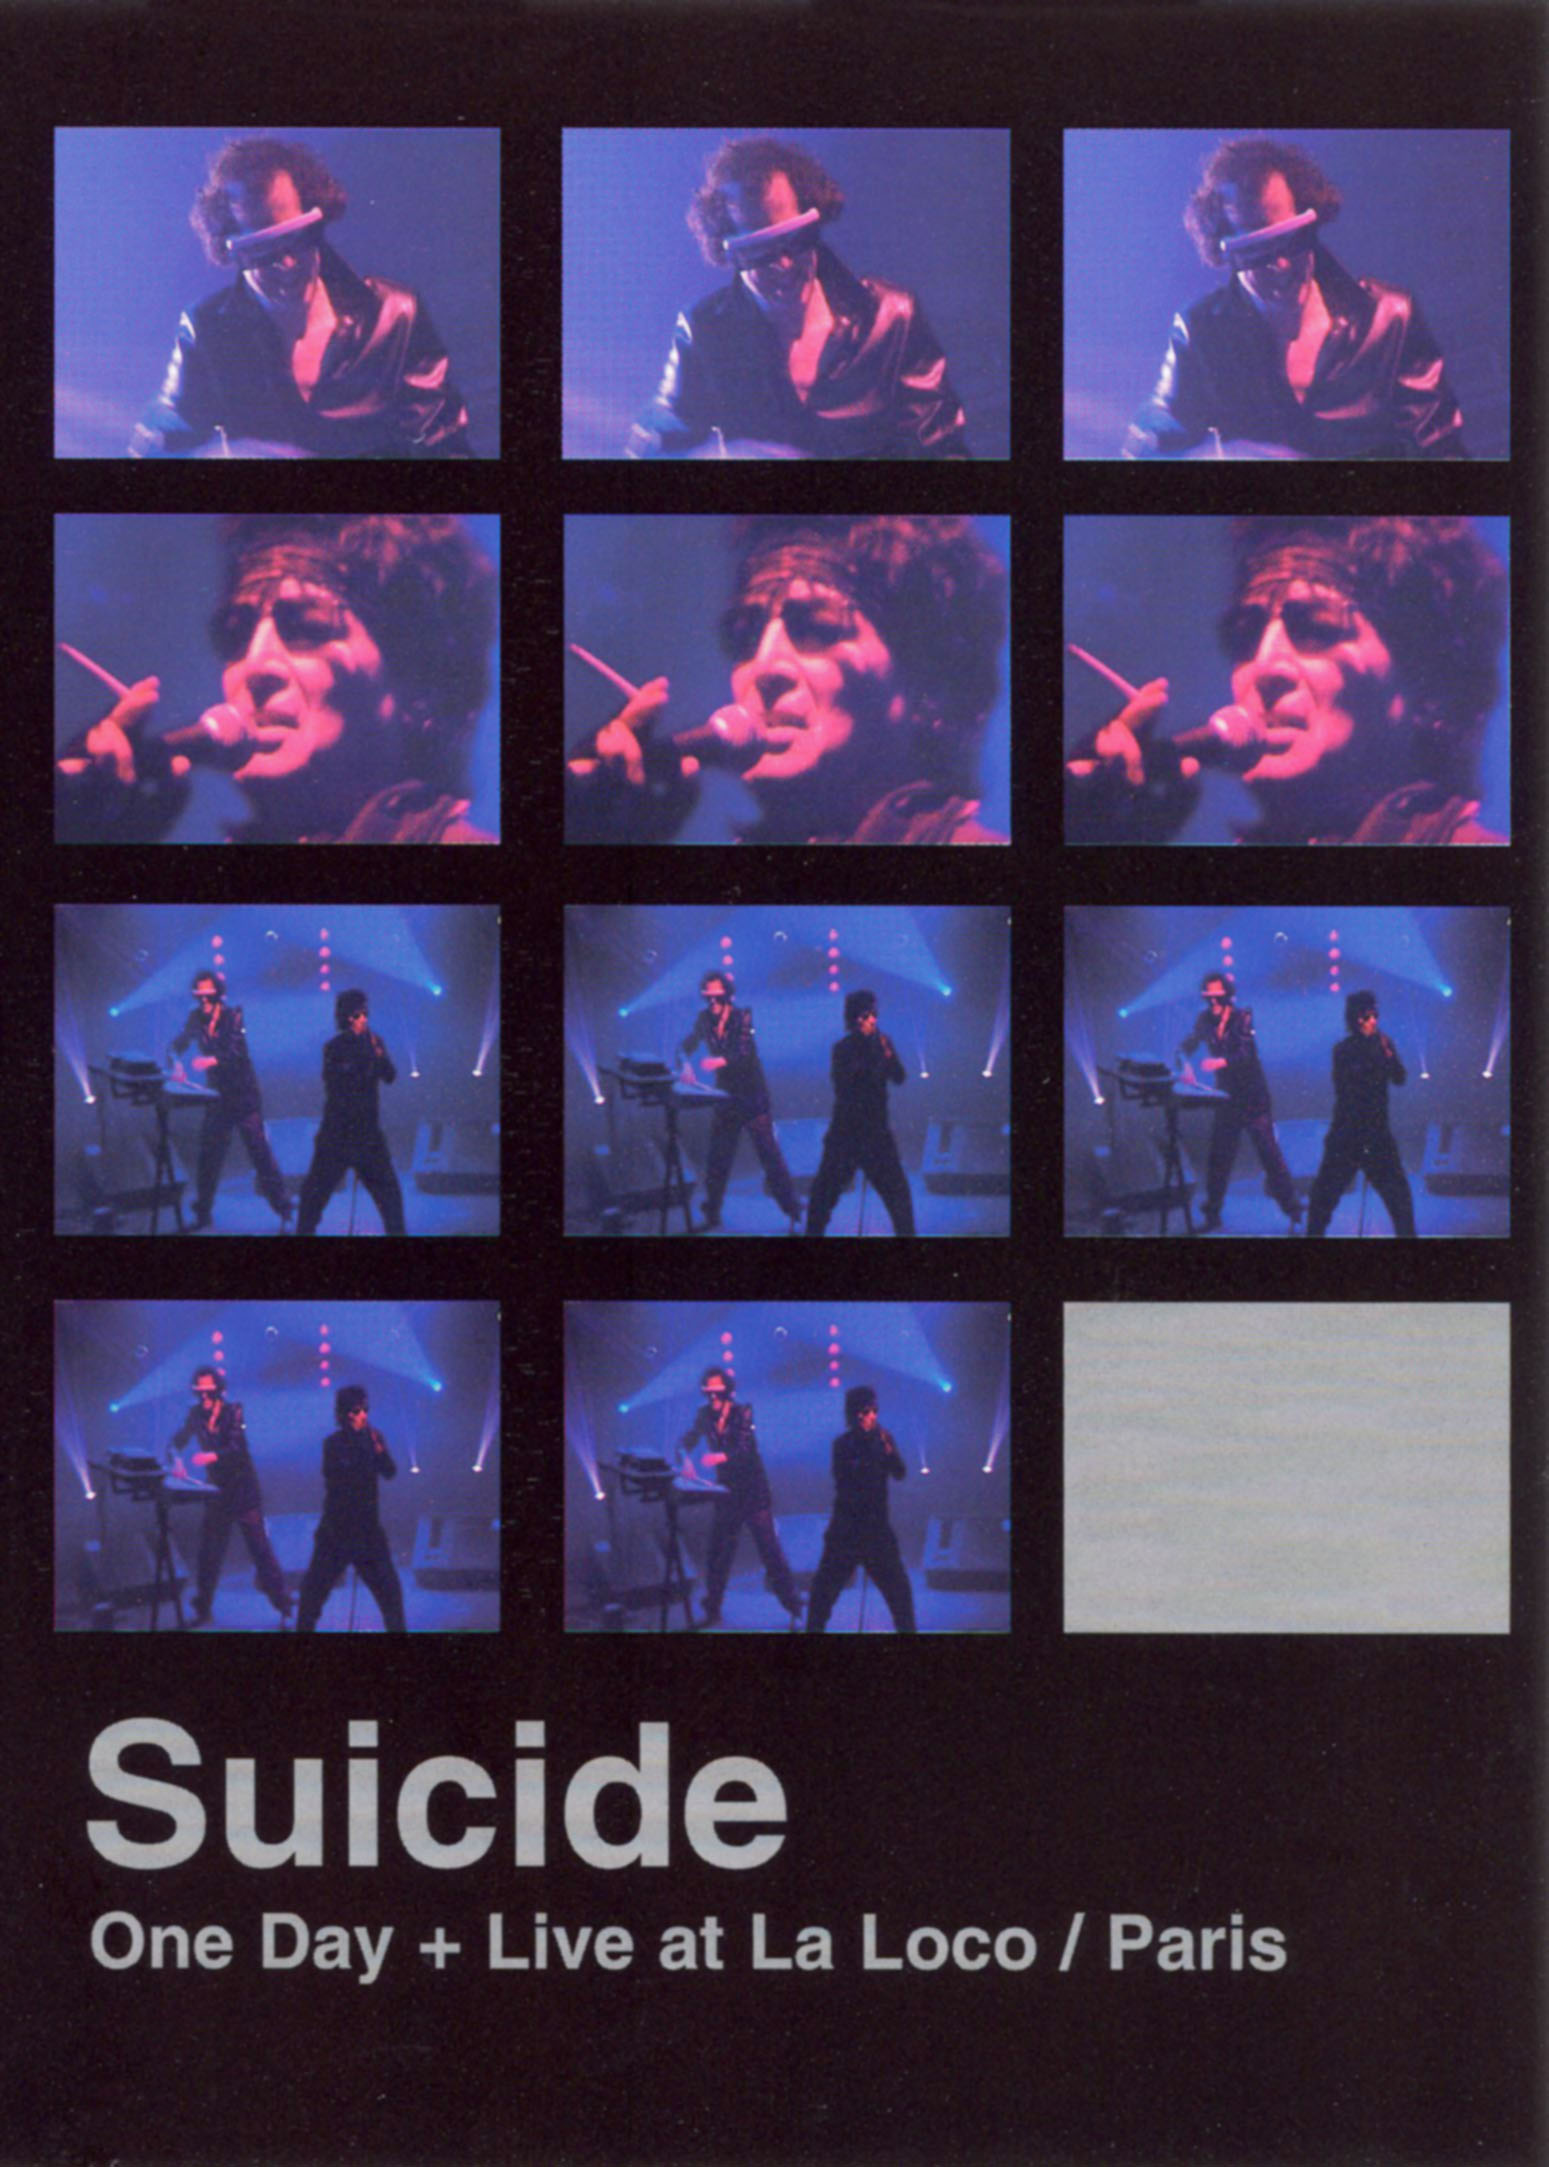 Suicide: One Day and  Live at La Loco, Paris